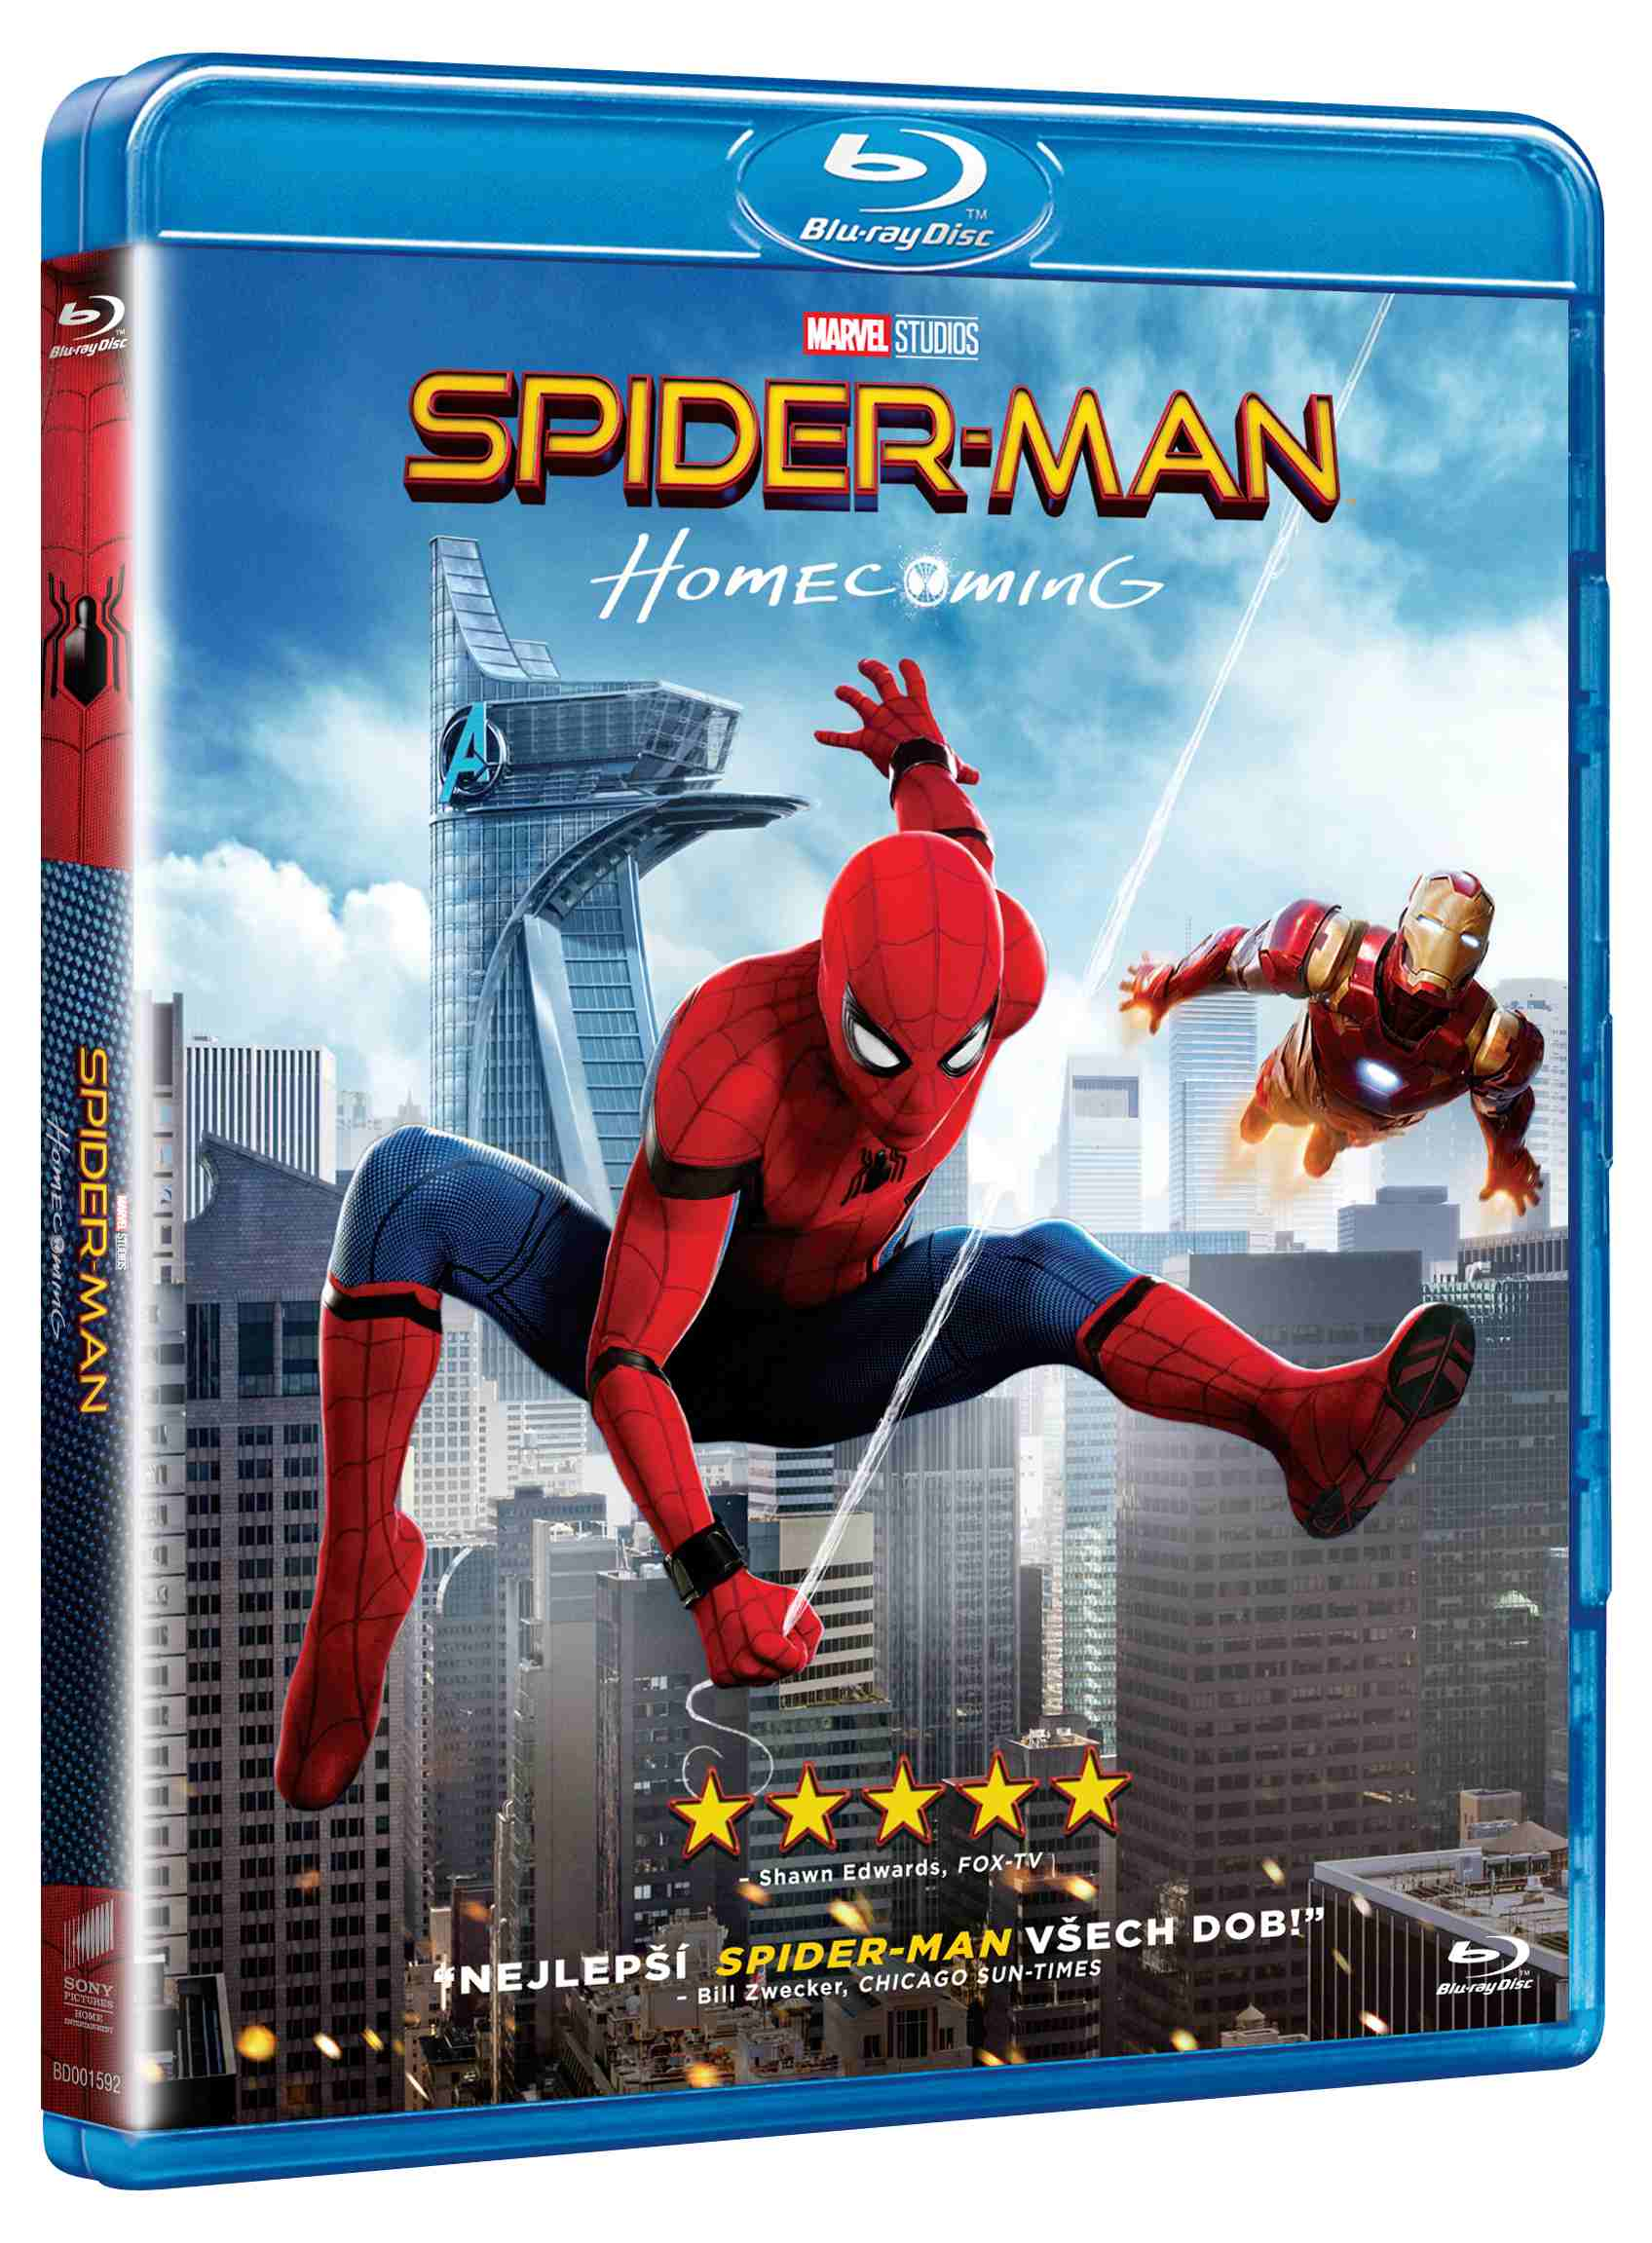 SPIDER-MAN: HOMECOMING - Blu-ray + komiks